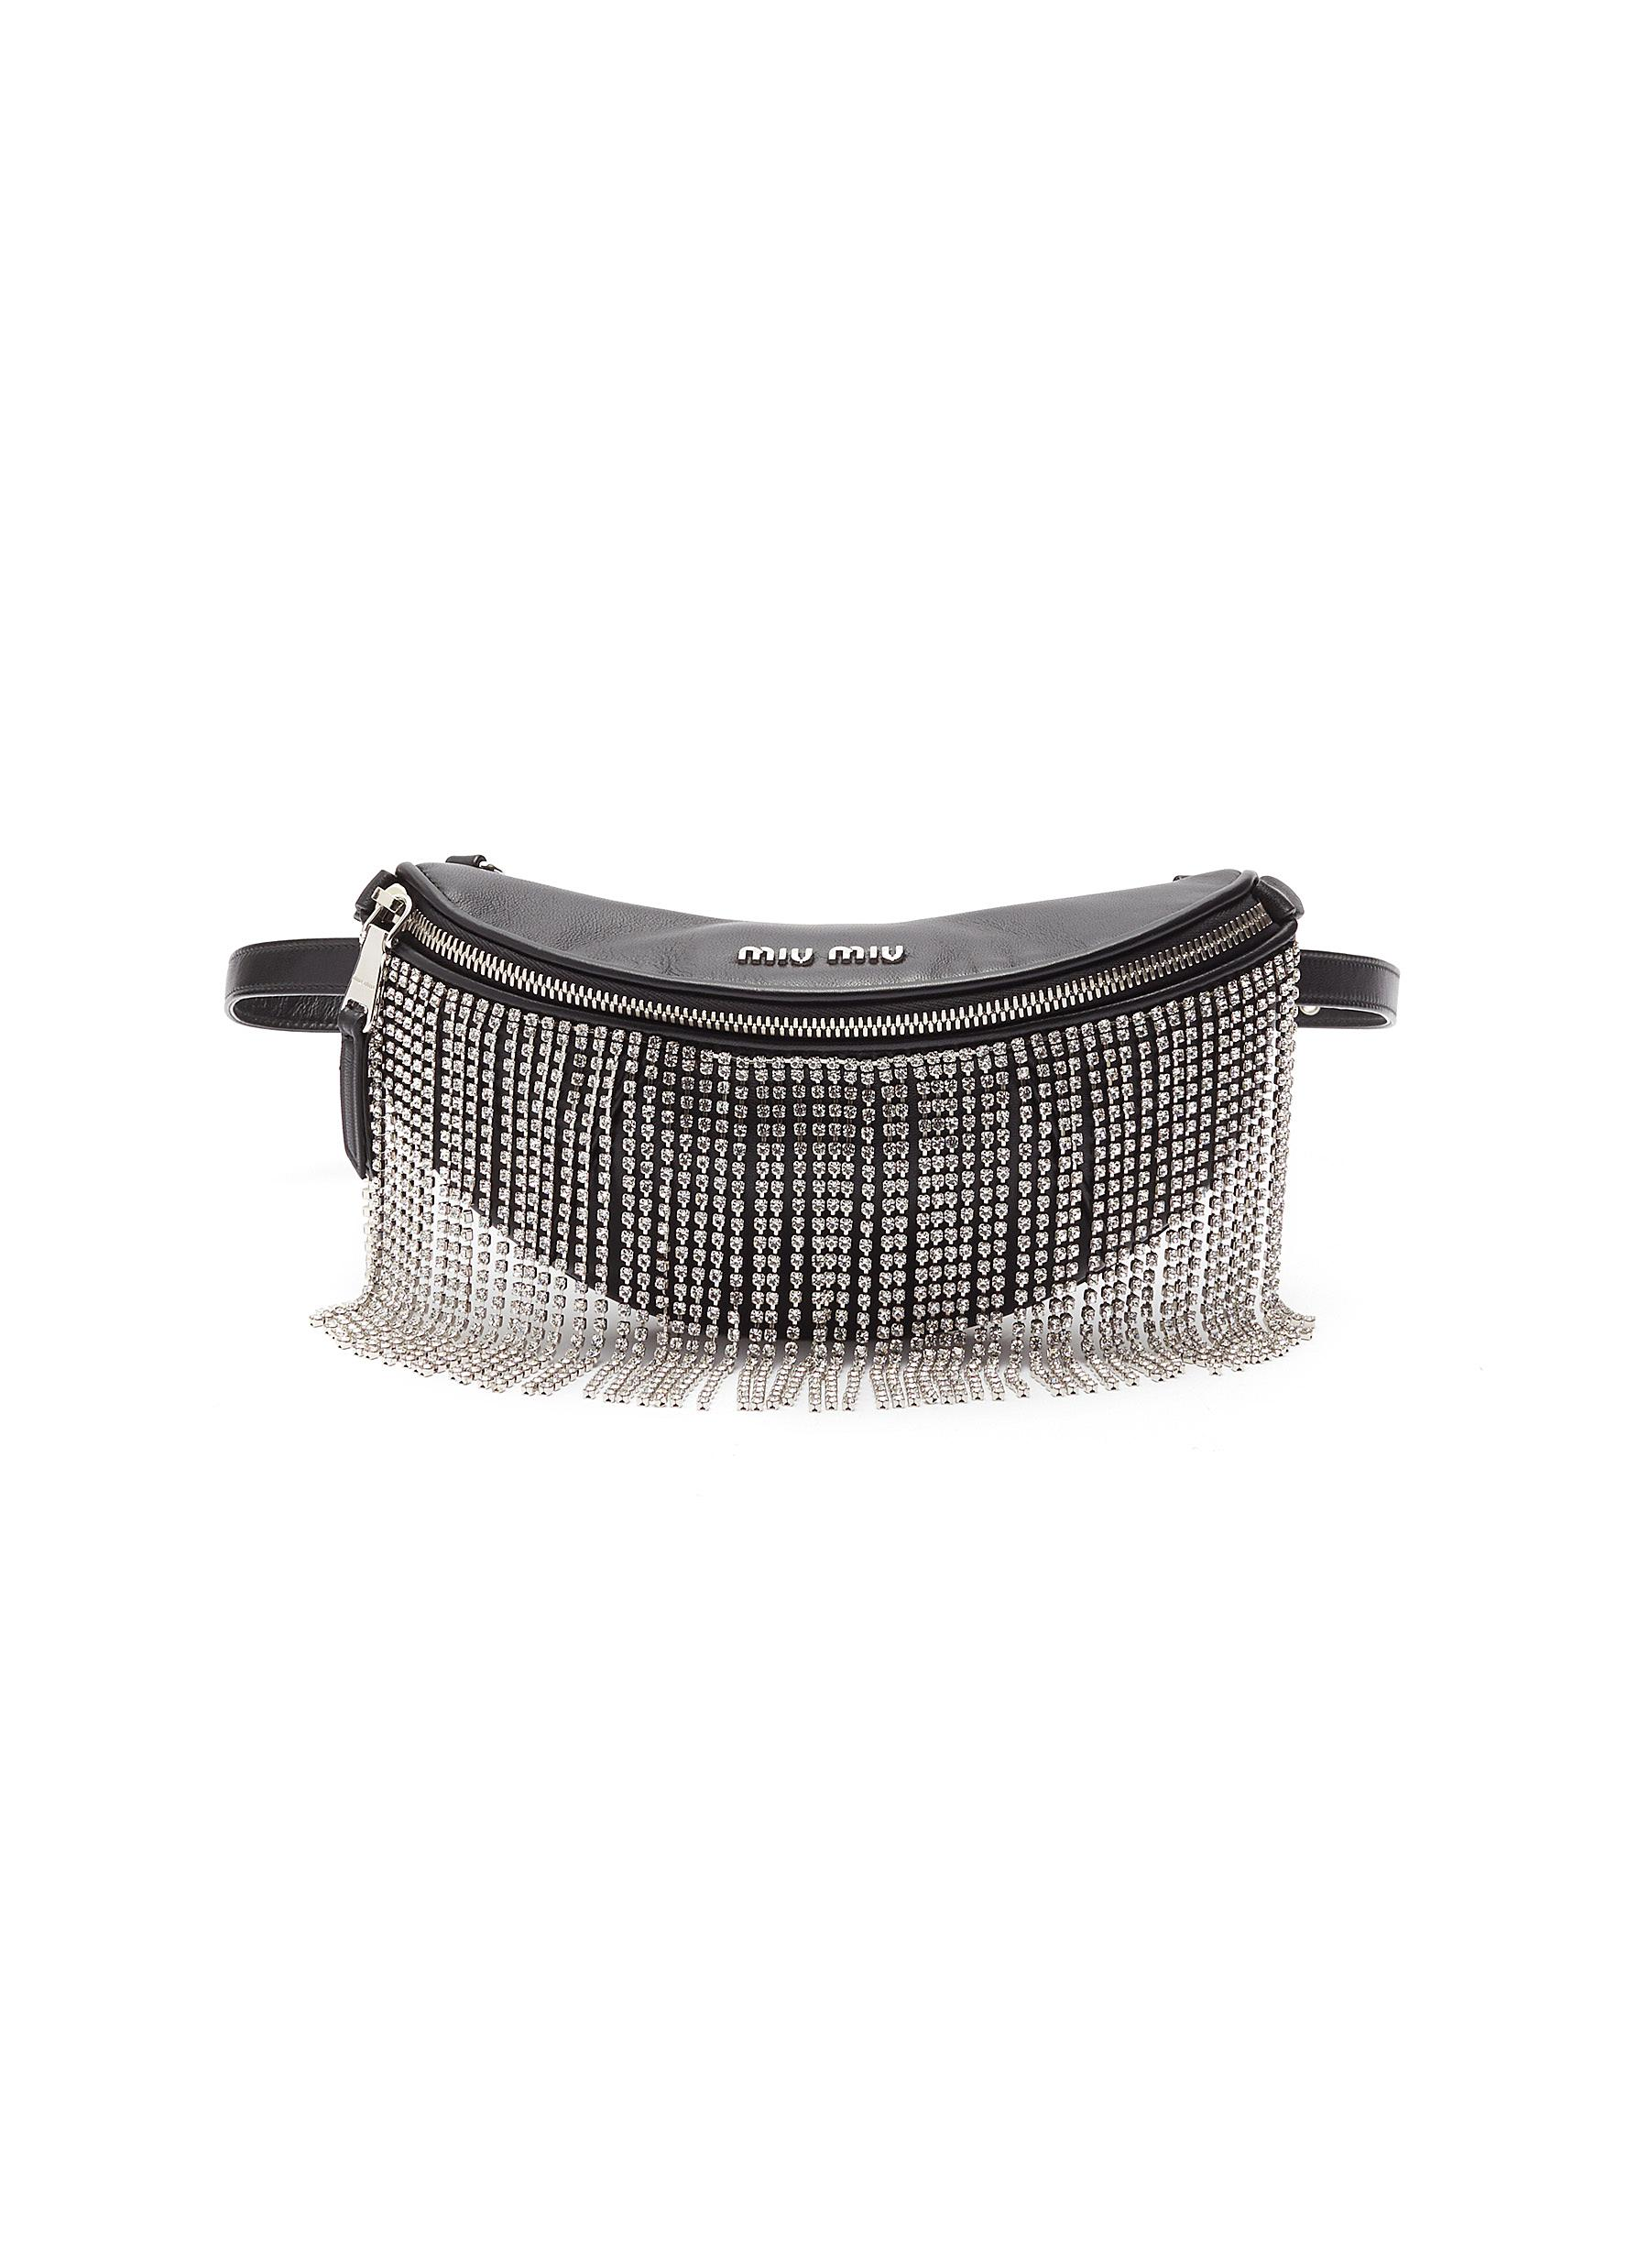 6fbe72bc1c23 Main View - Click To Enlarge - Miu Miu - Glass crystal fringe leather bum  bag